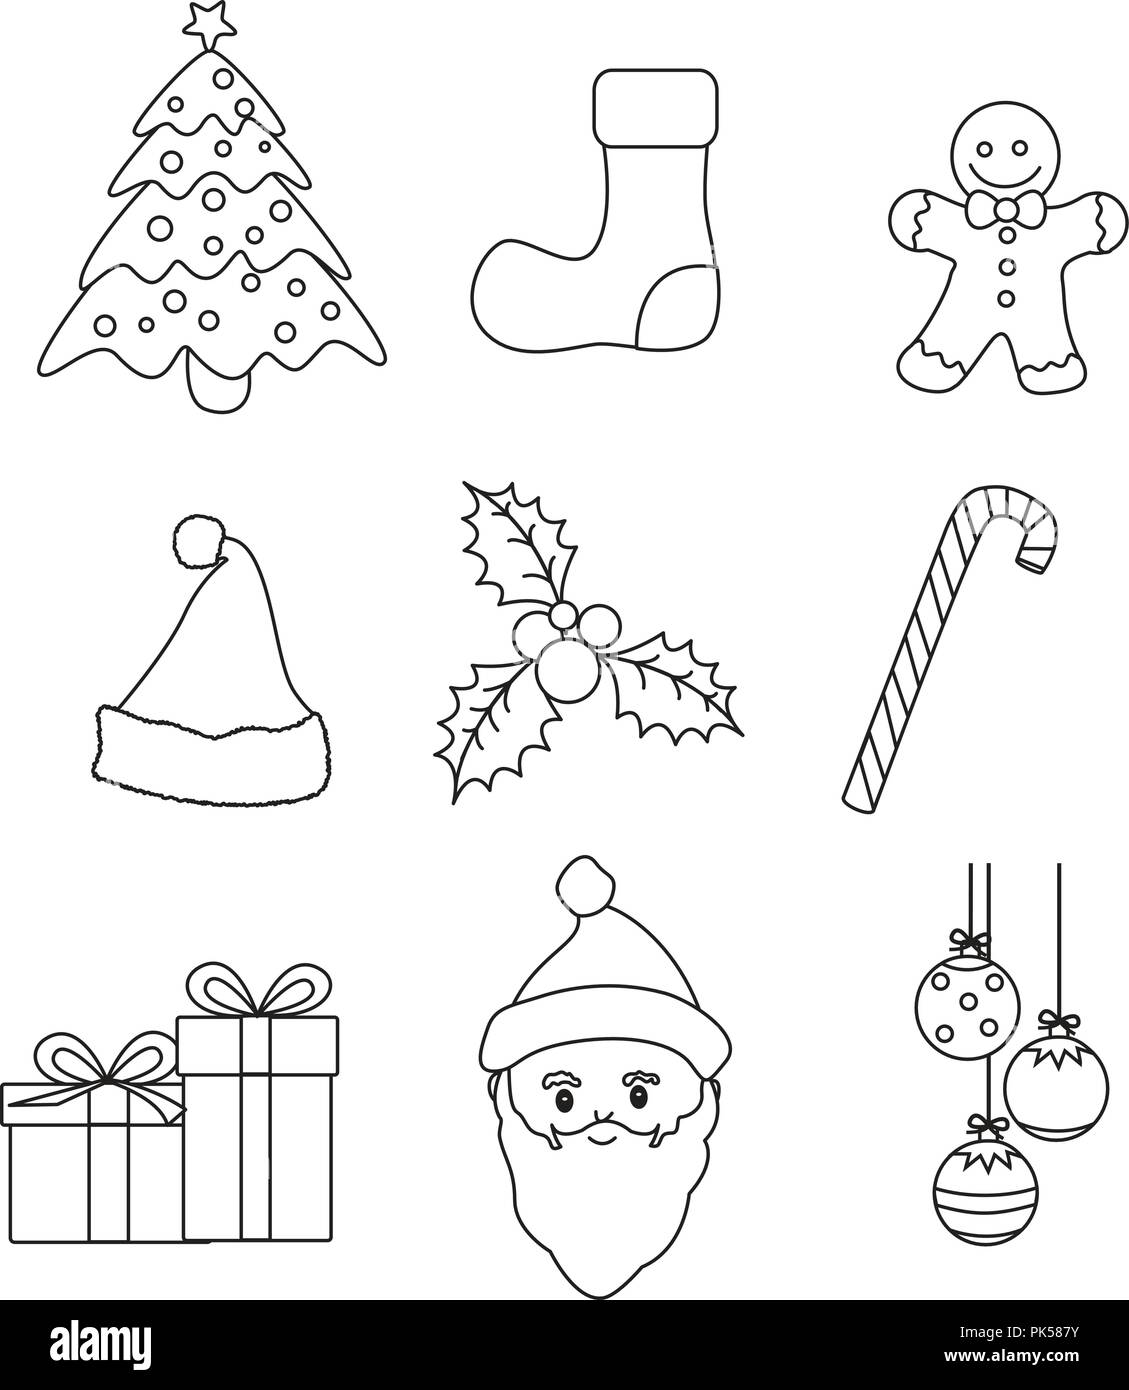 Christmas Graphic Lineart Collection For Kids Coloring